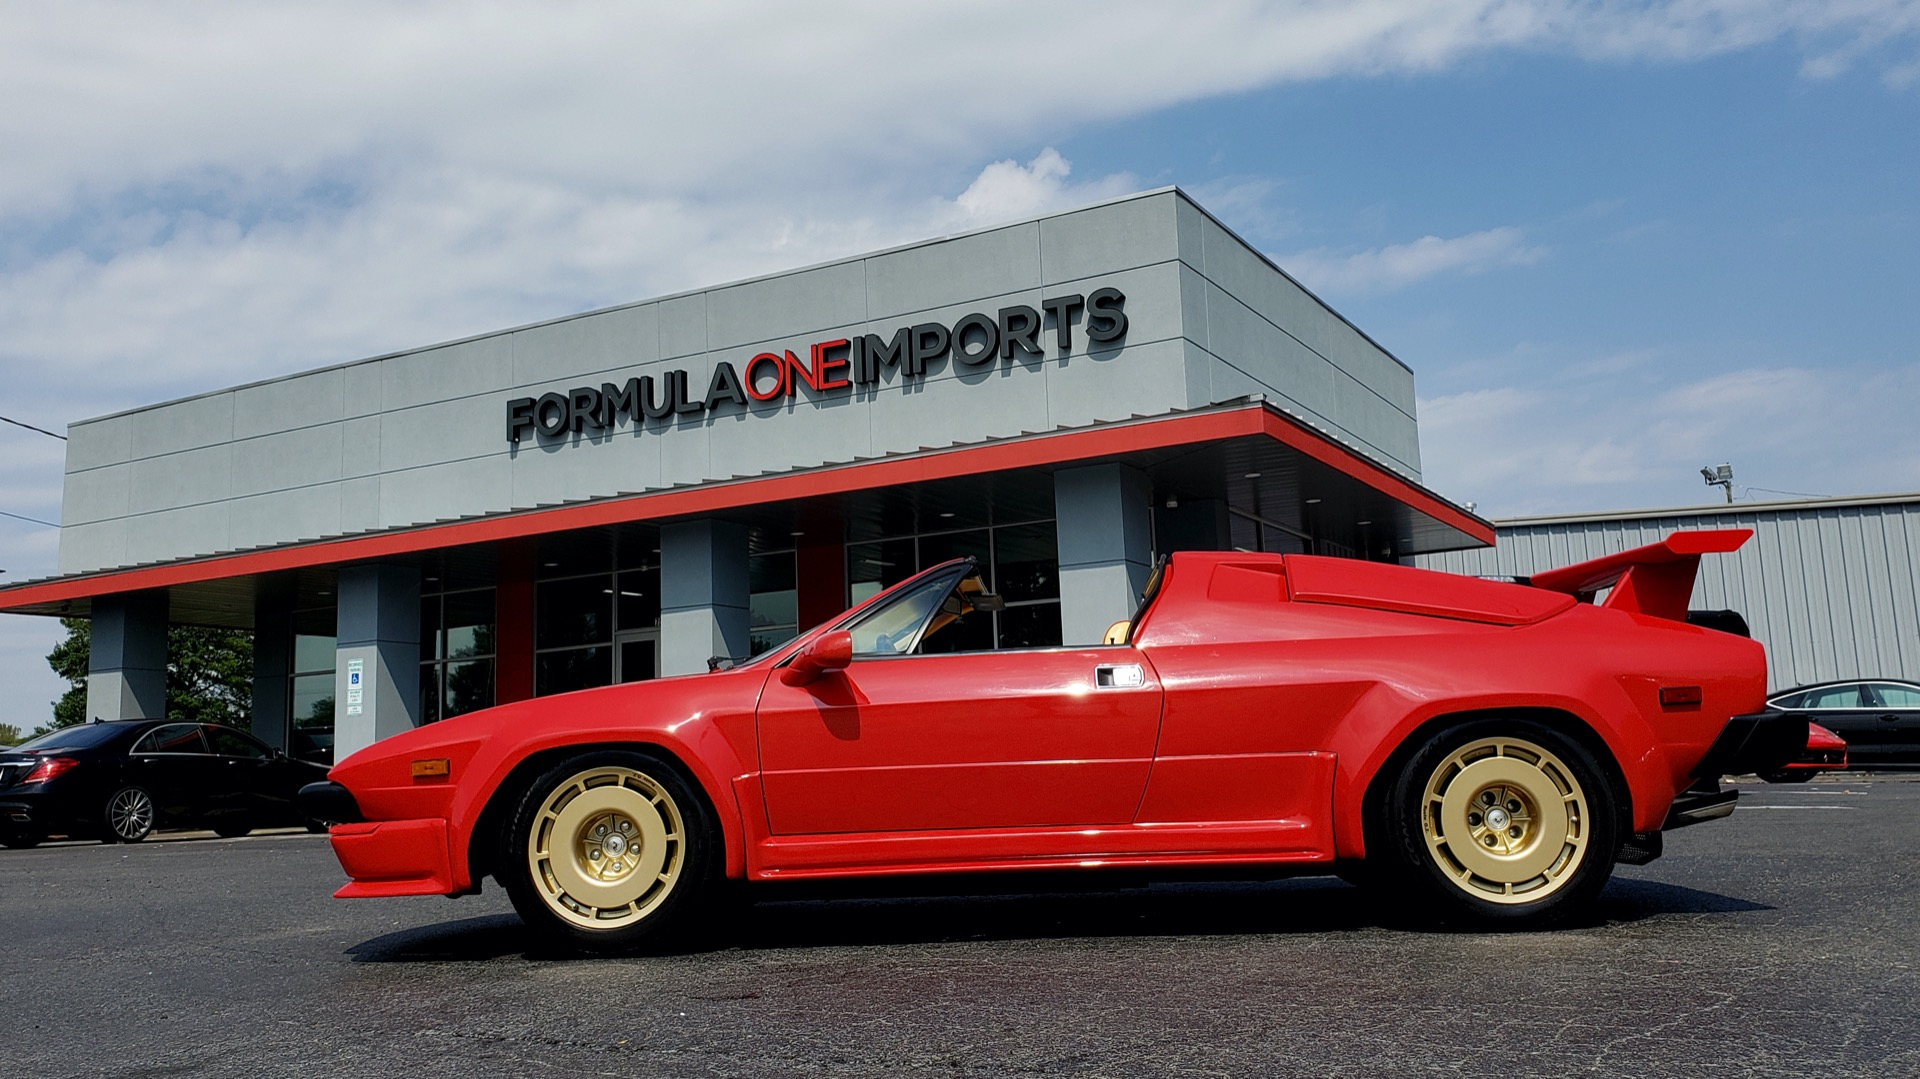 Used 1988 Lamborghini Jalpa 3.5 / 5-Speed Man / Low Miles / Excellent Condition for sale $108,995 at Formula Imports in Charlotte NC 28227 4